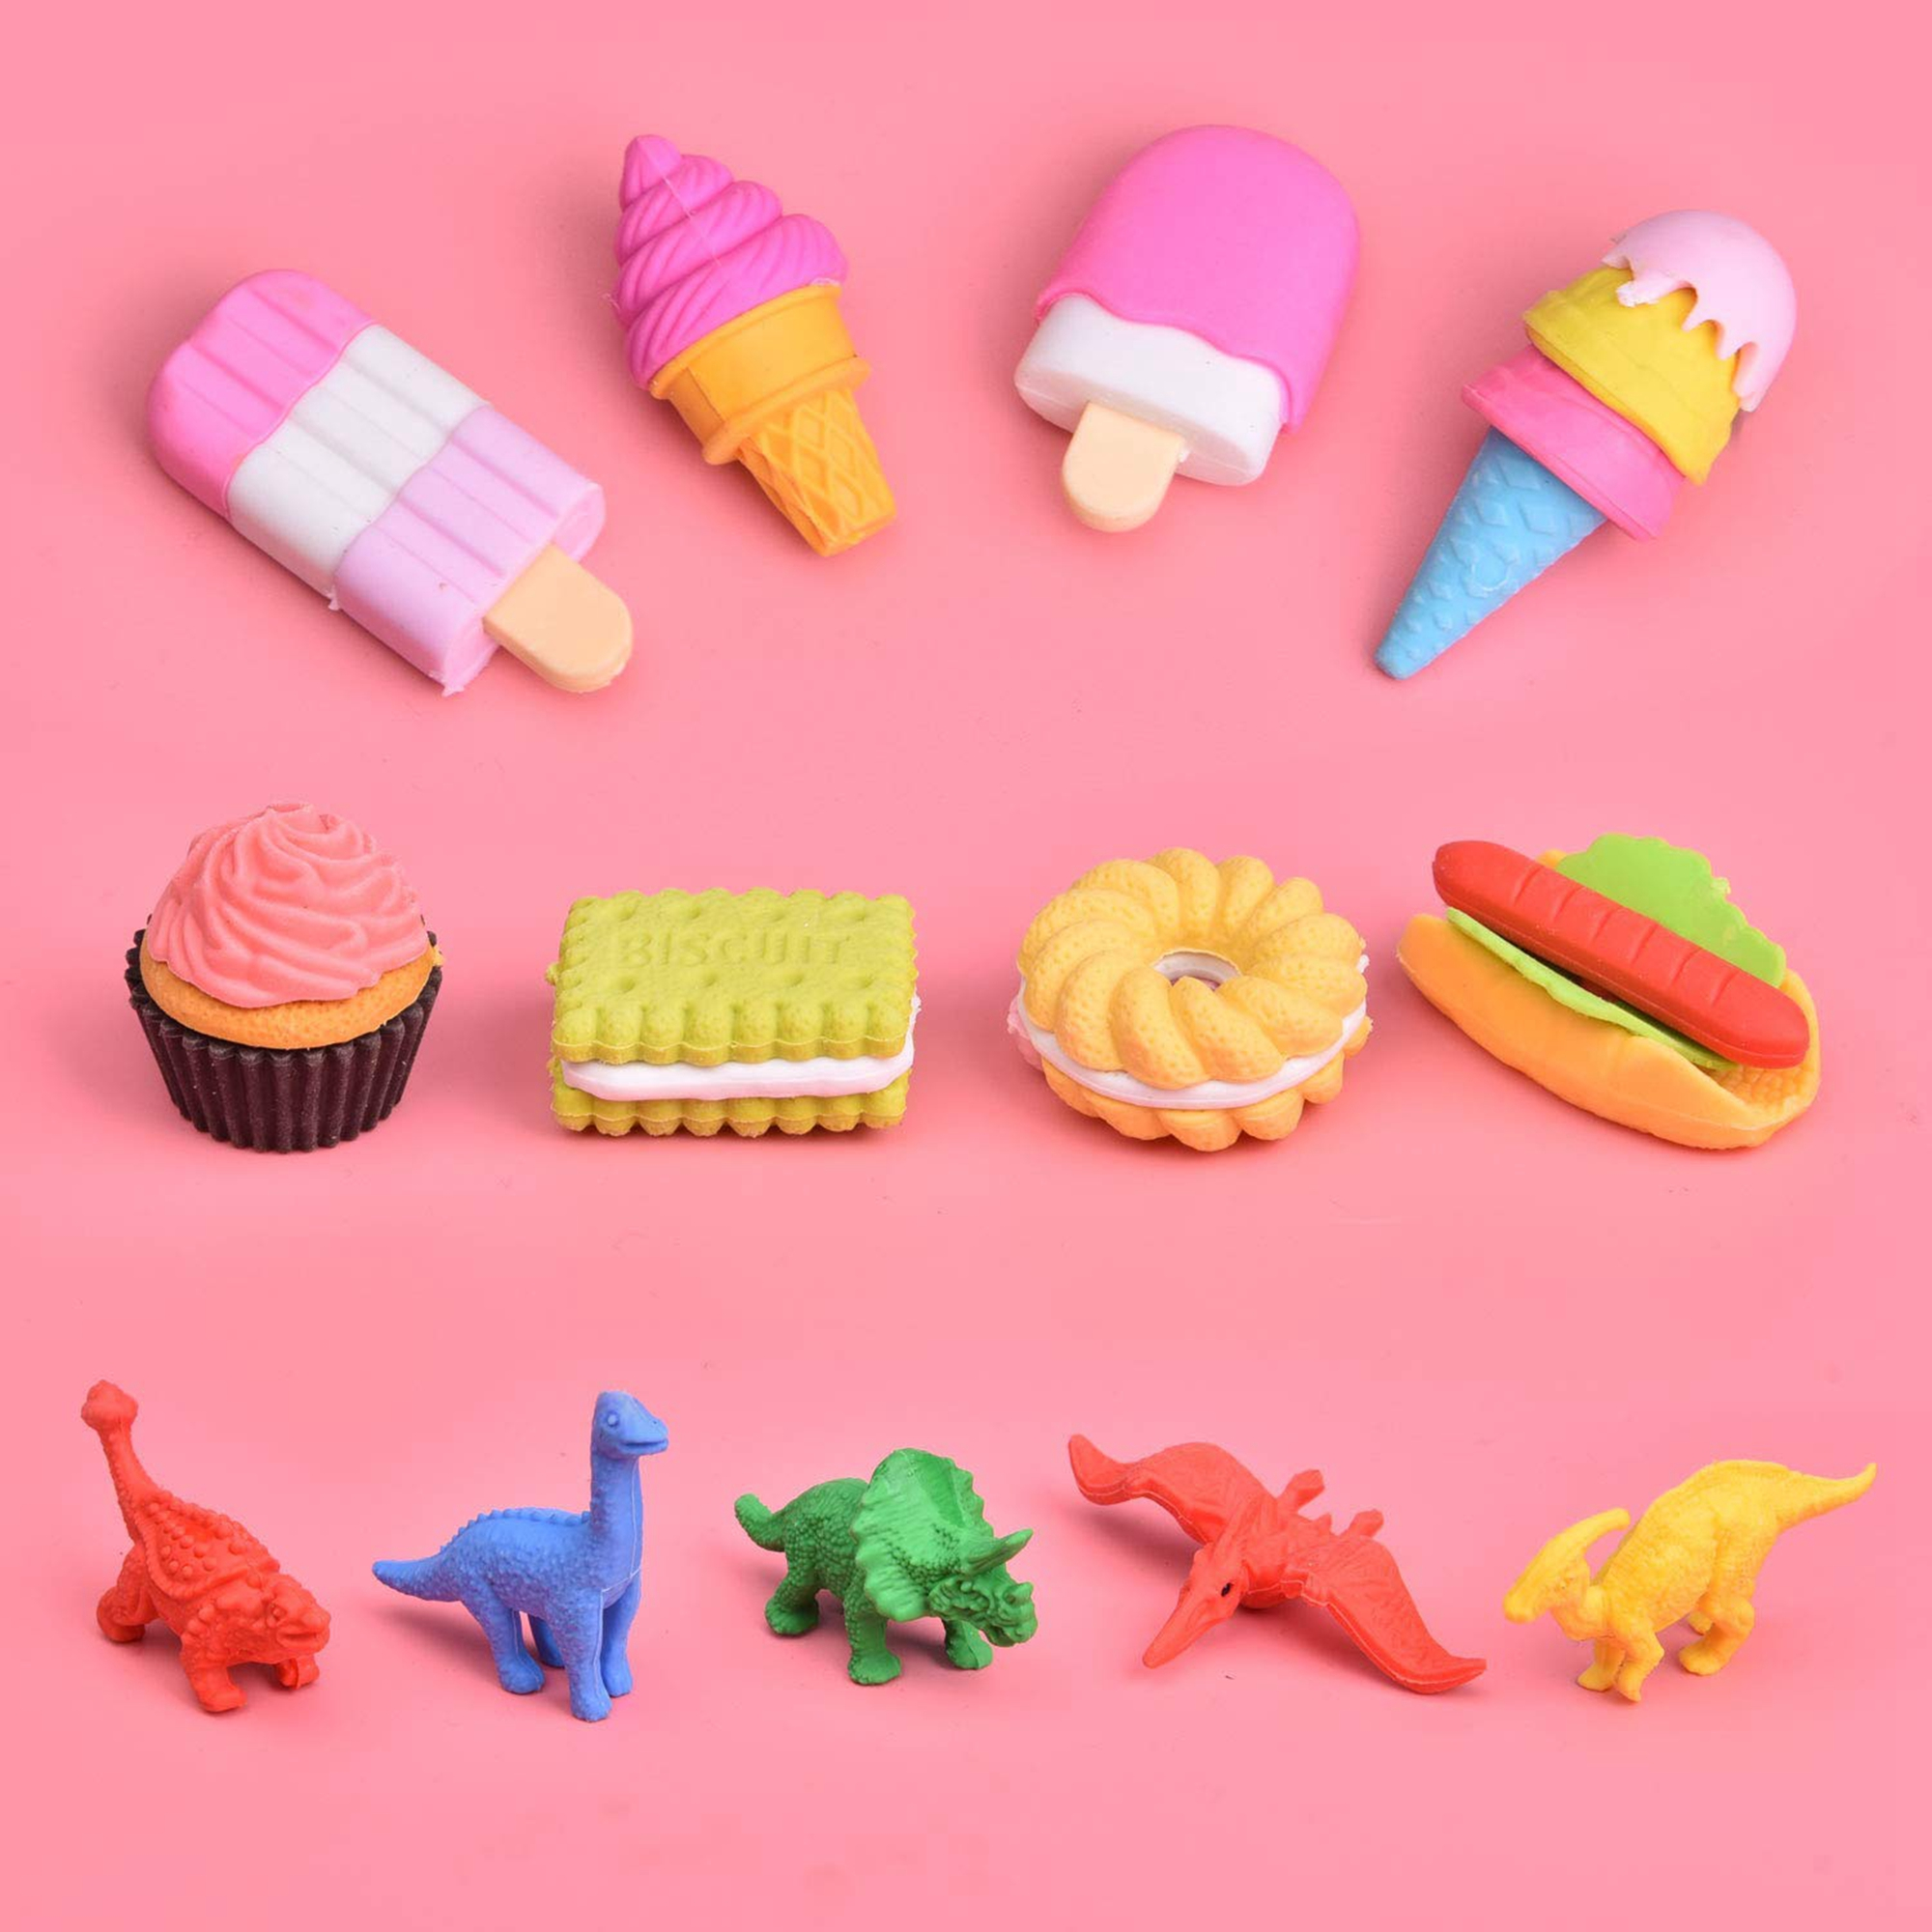 72ct pull apart 3d mini puzzle erasers party favors for kids 72ct